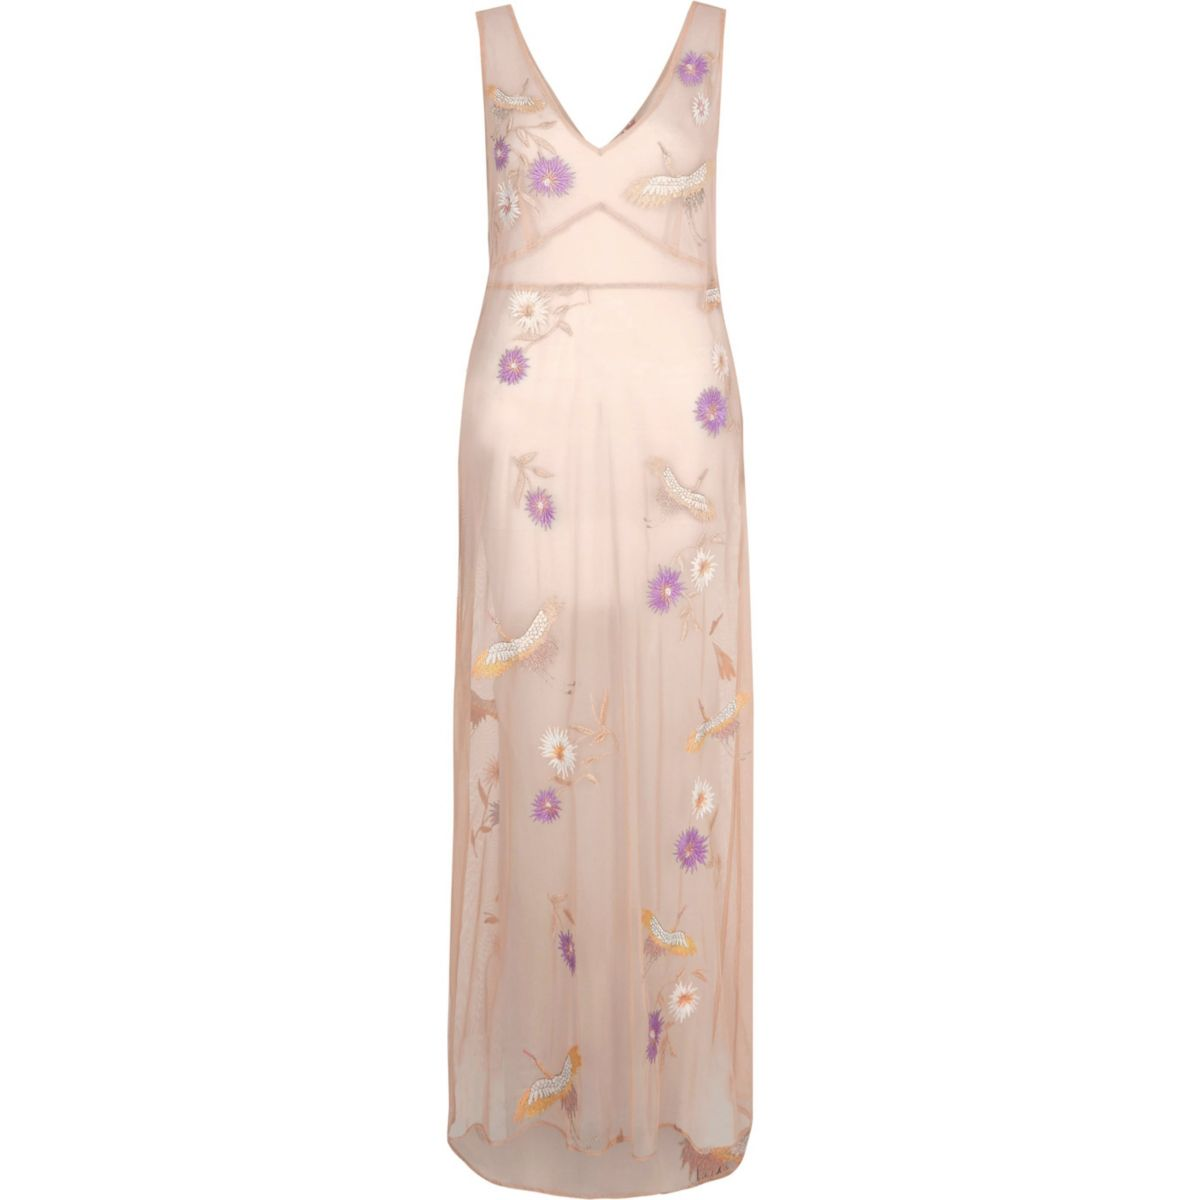 Light pink sheer embroidered maxi beach dress